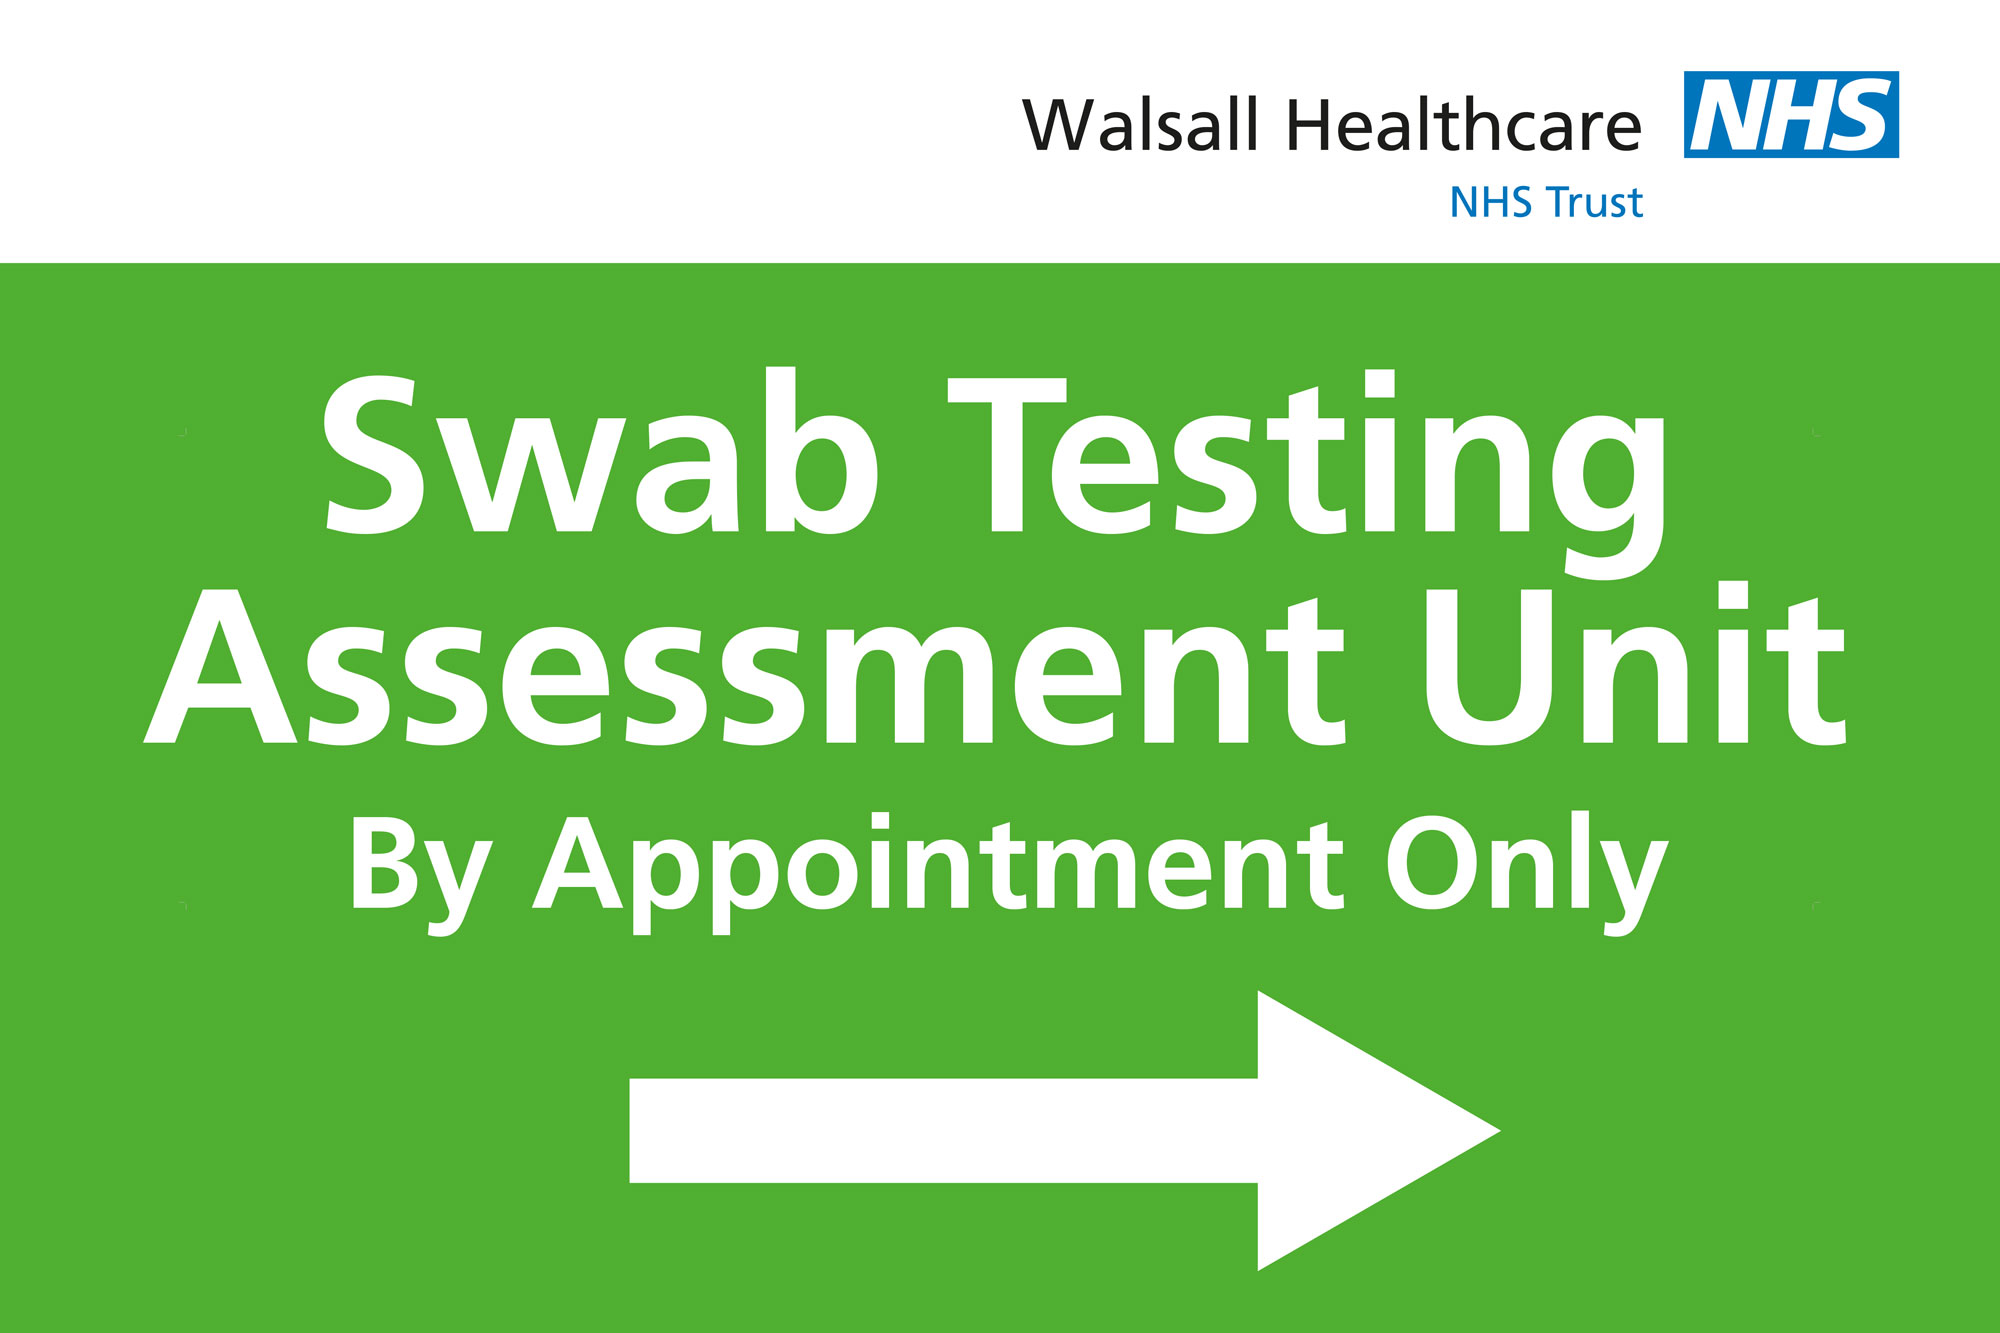 swab test unit sign